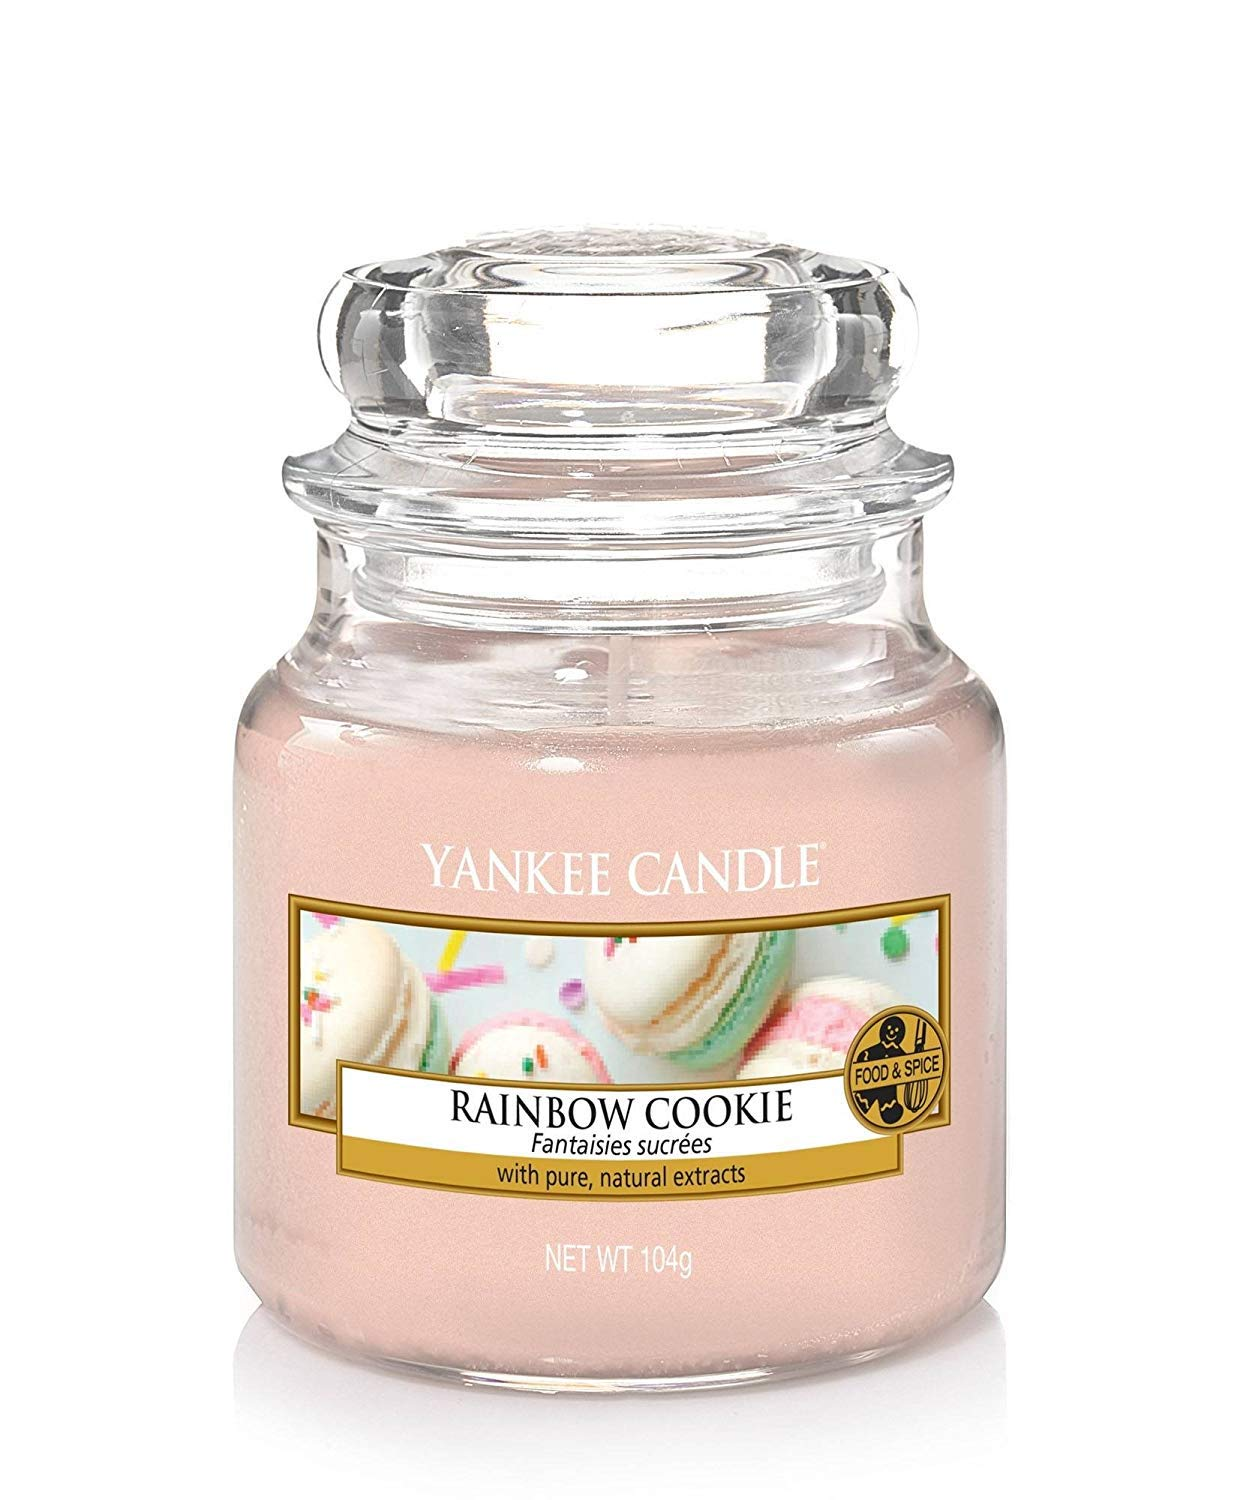 新到着 Yankee Candle Candle Rainbow Cookie Small Small Jar Jar B078HYL1C6, ペットの雑貨屋さん spring:9ff48e1e --- a0267596.xsph.ru